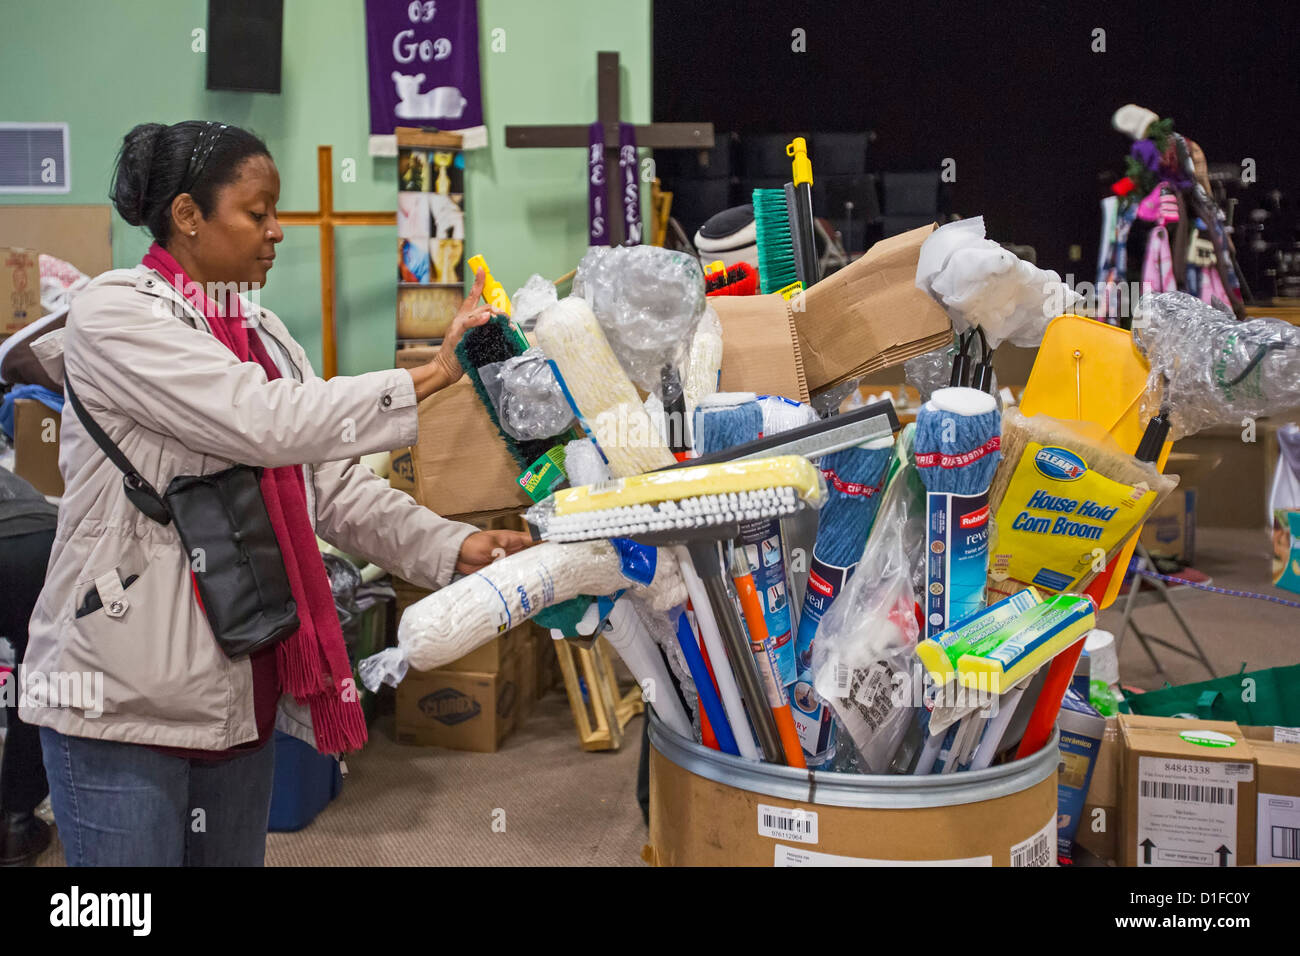 Food and Supplies Donated for Victims of Hurricane Sandy Awaits Distribution in Church Sanctuary - Stock Image